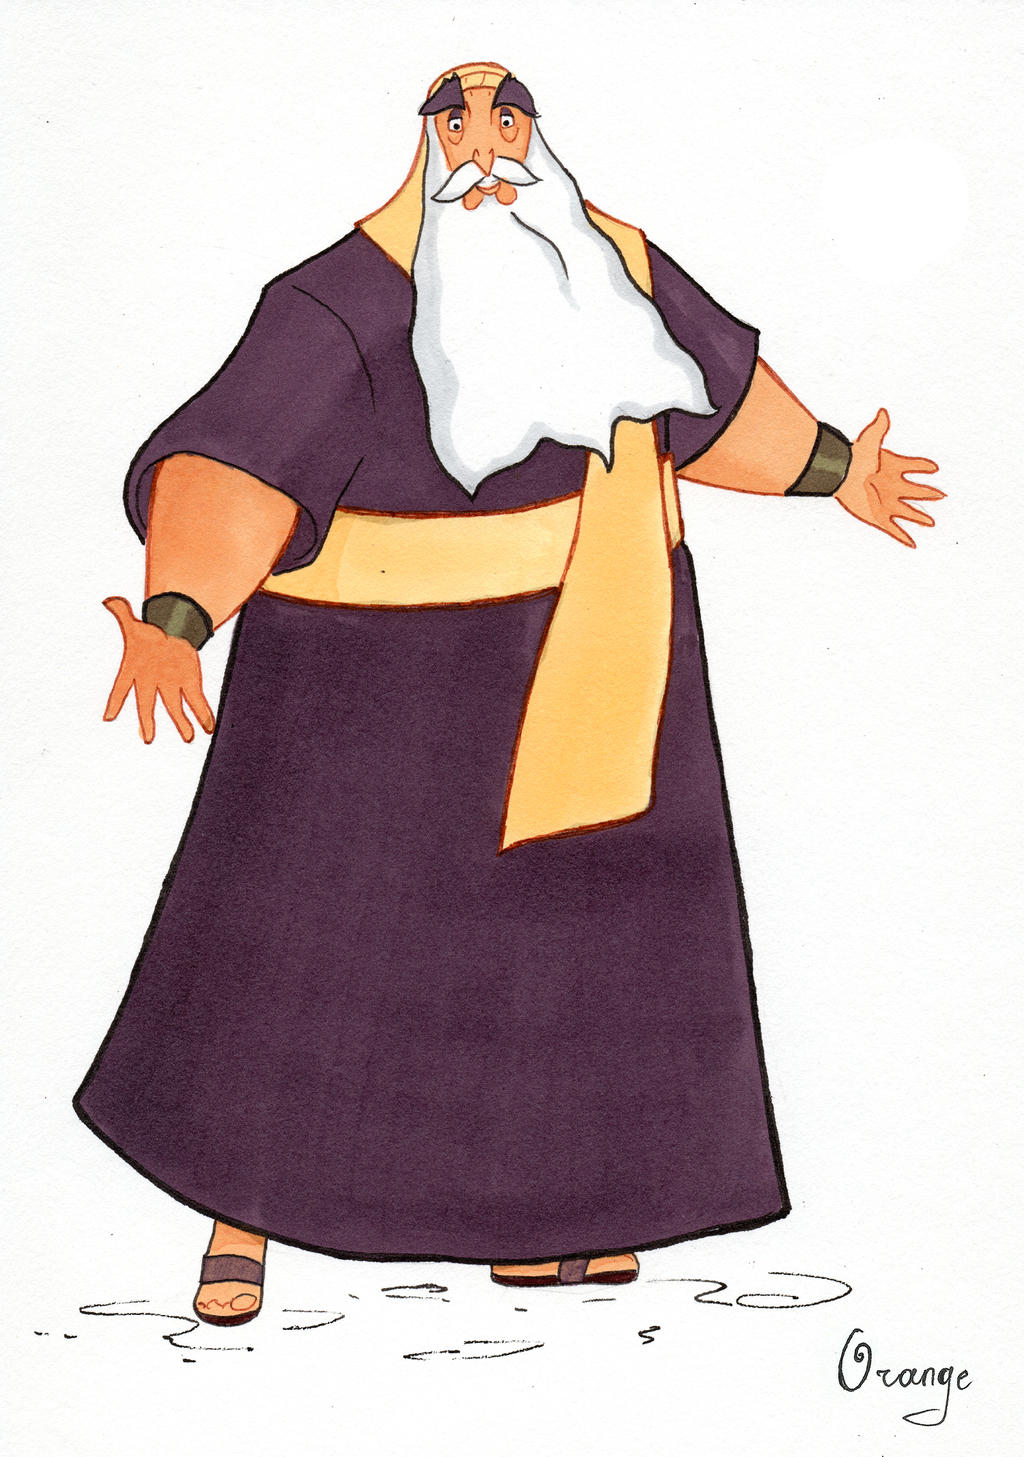 Jethro from the Prince of Egypt by PlumpOrange